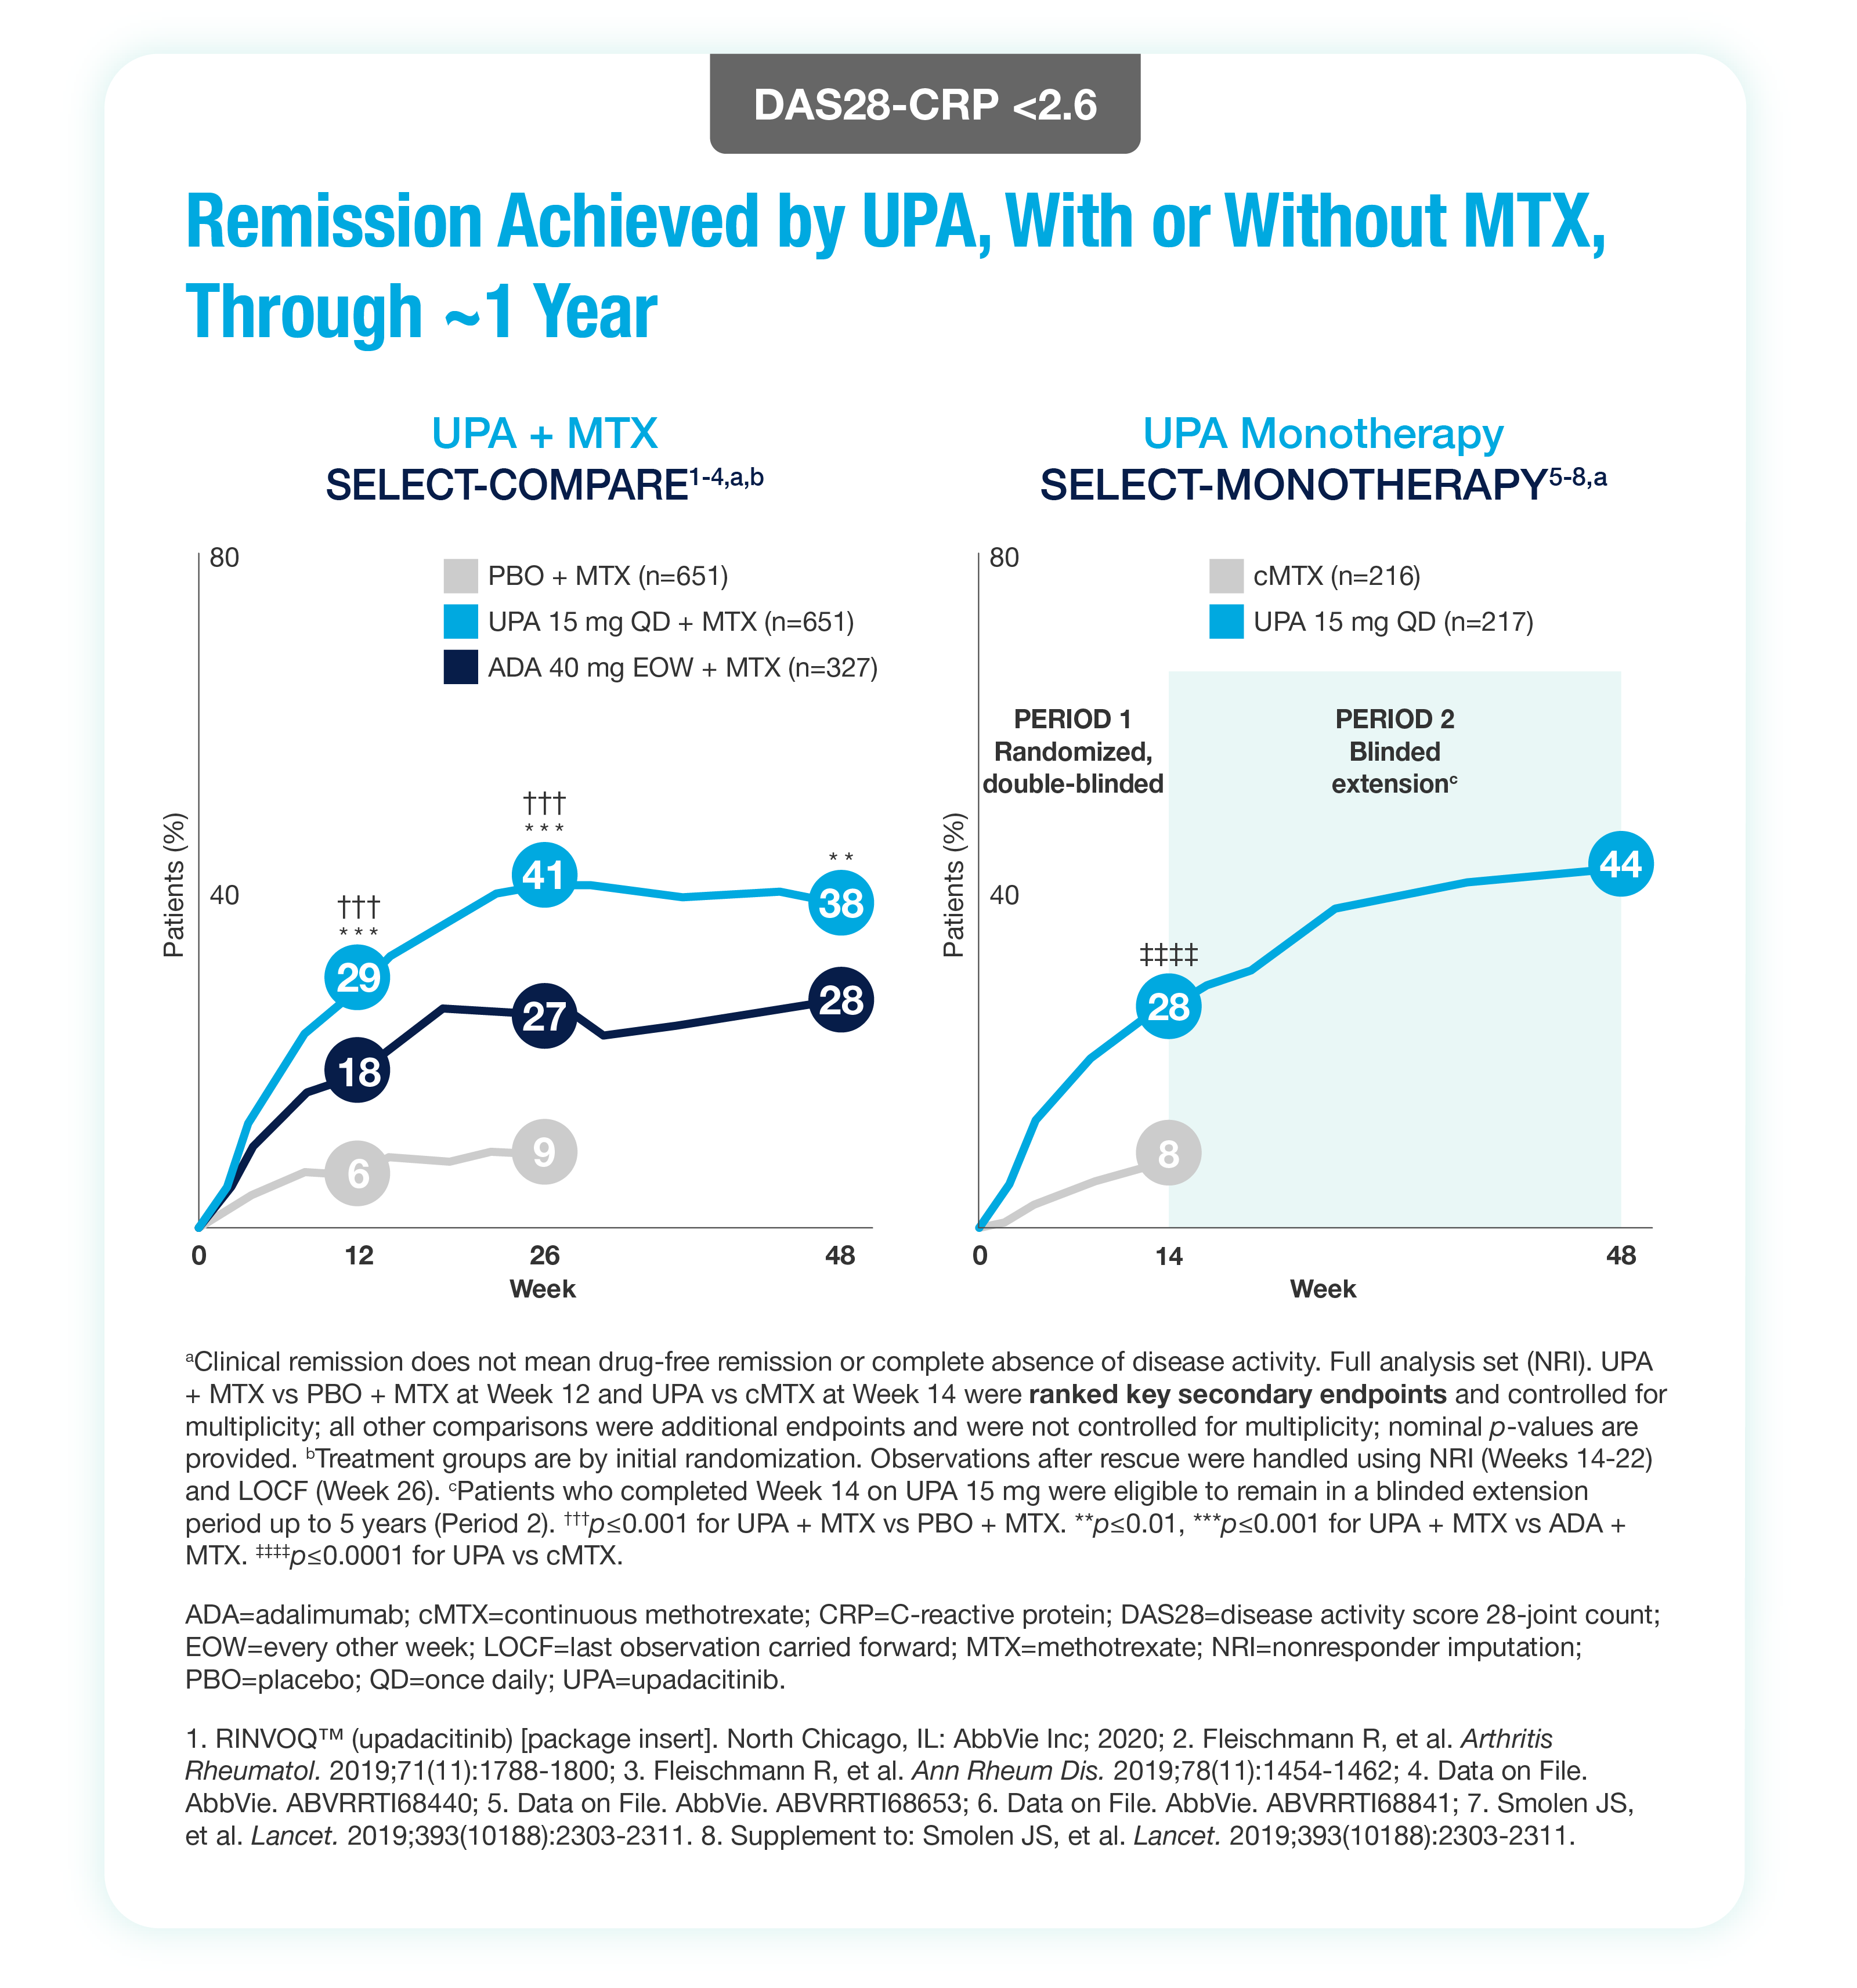 Remission Achieved by UPA, With or Without MTX, Through - 1 Year